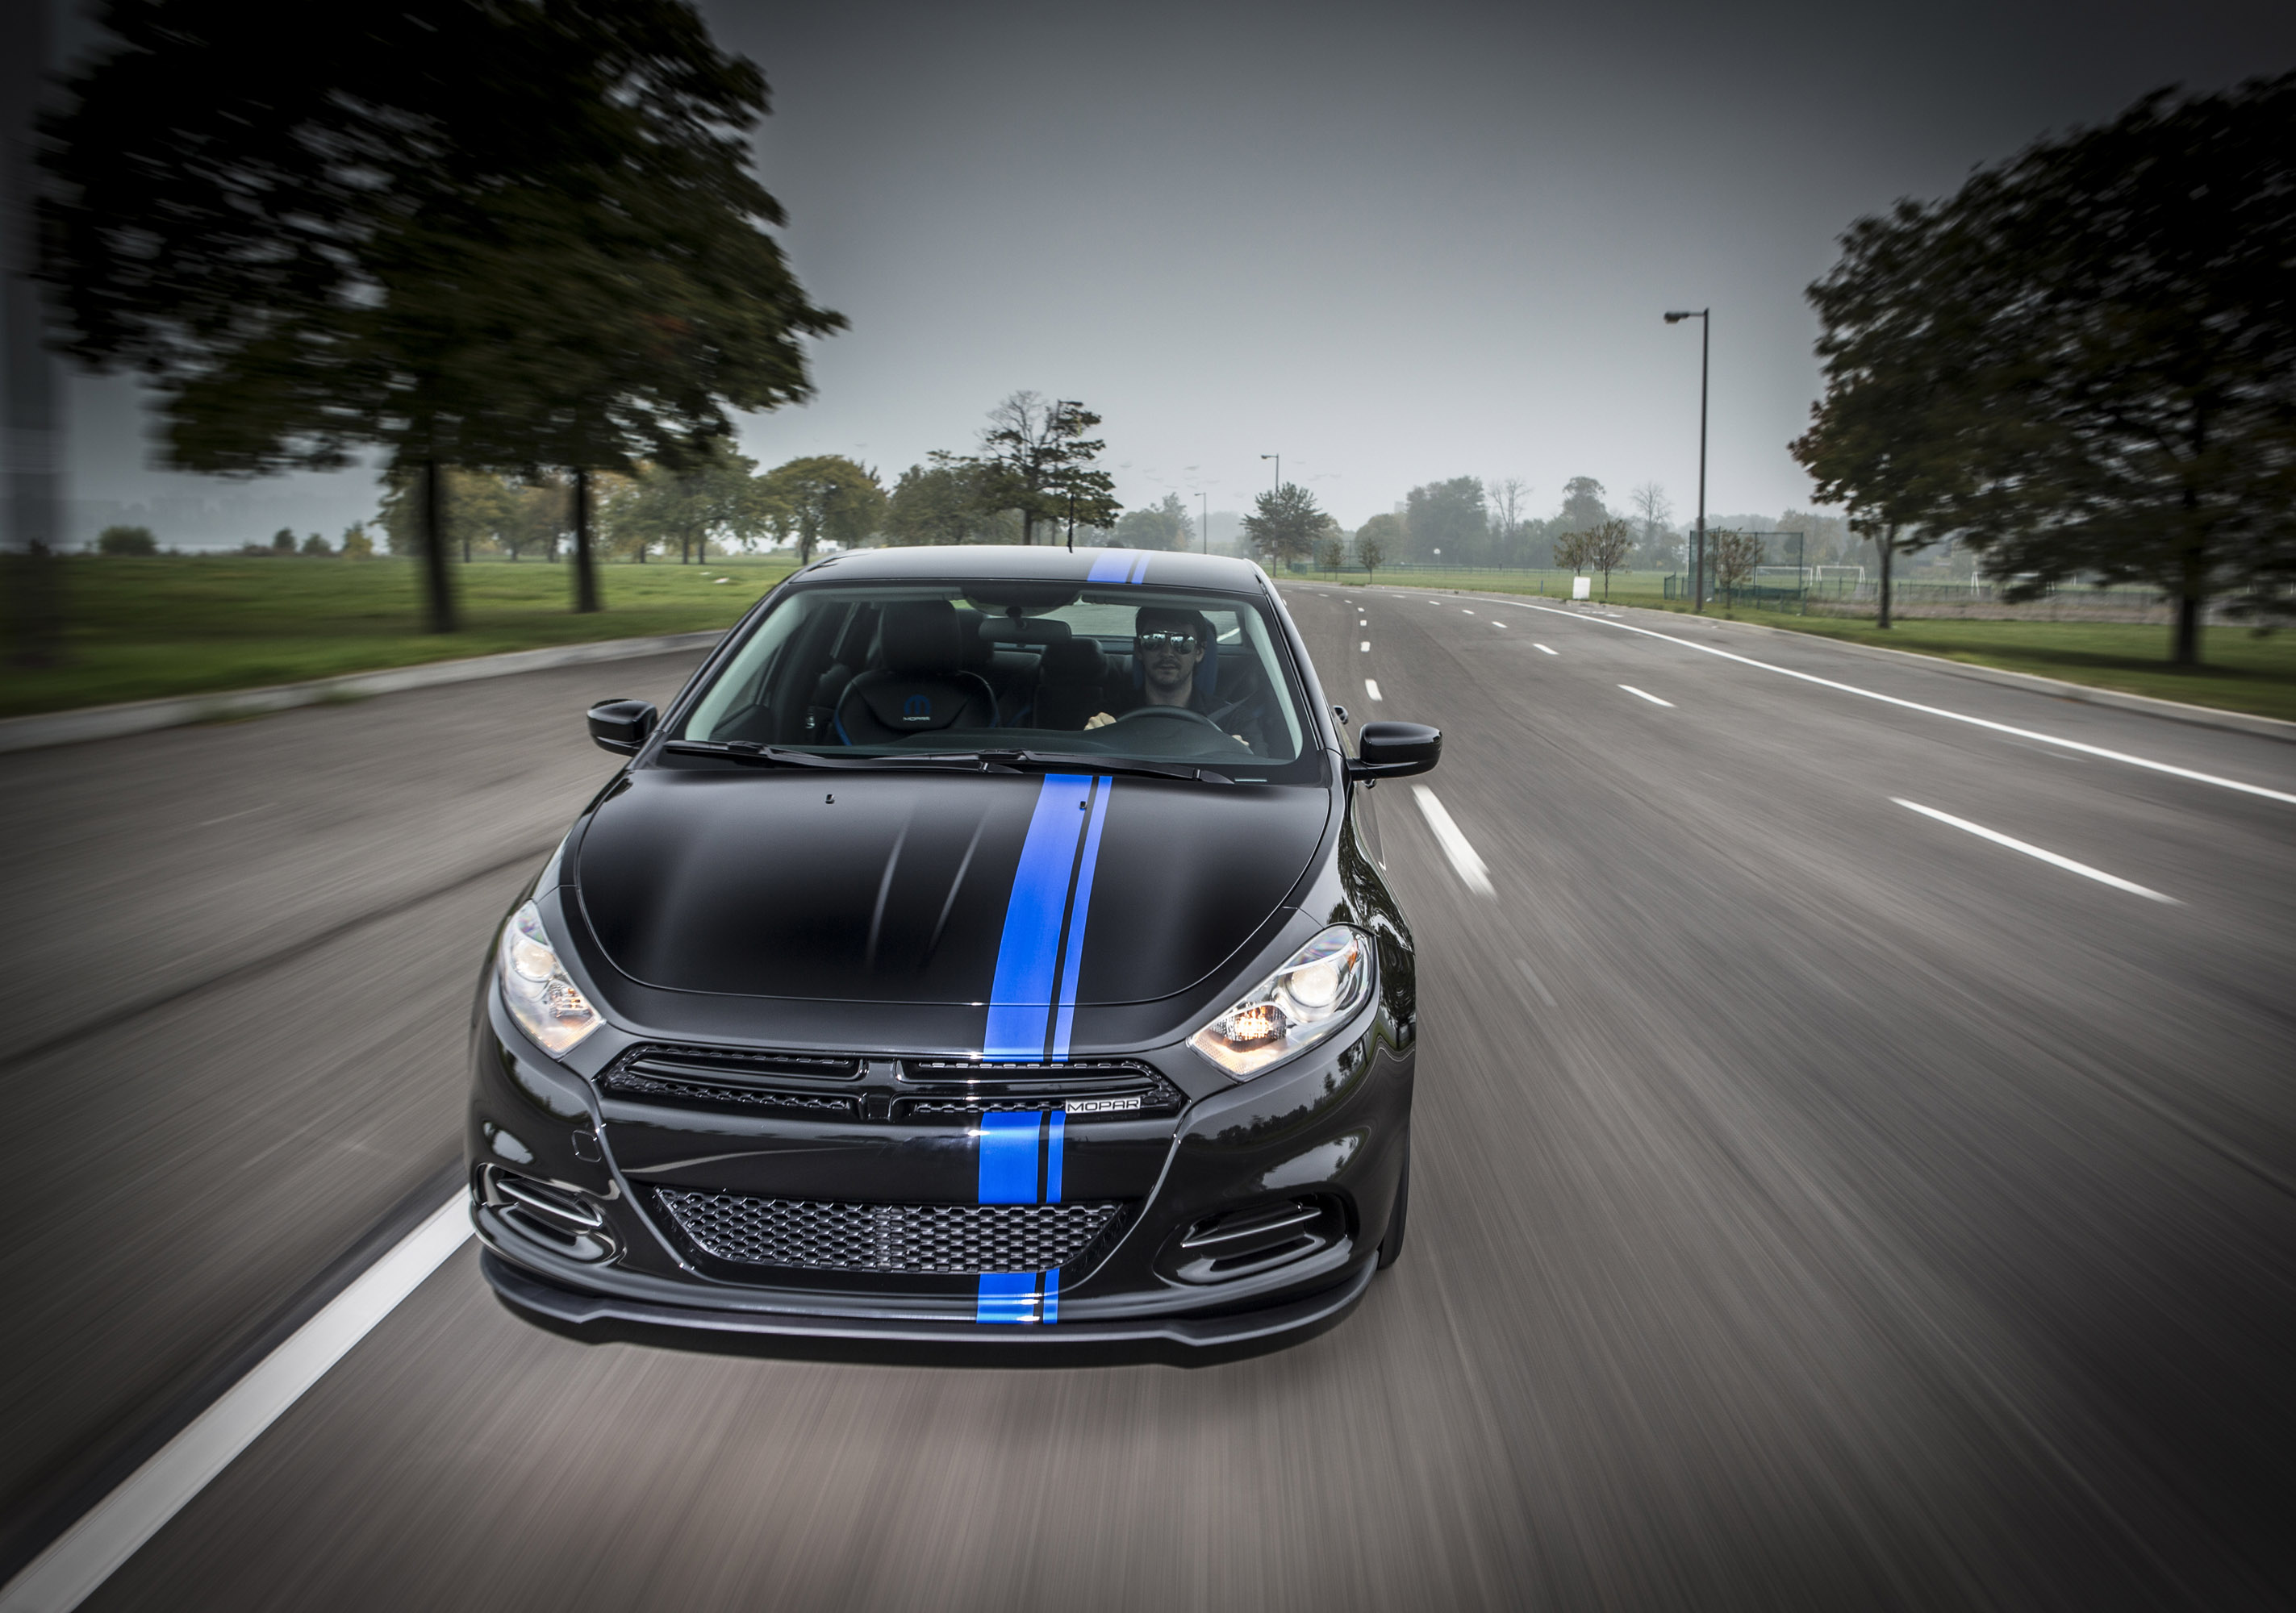 2013 Dodge Dart Mopar - Picture 80500